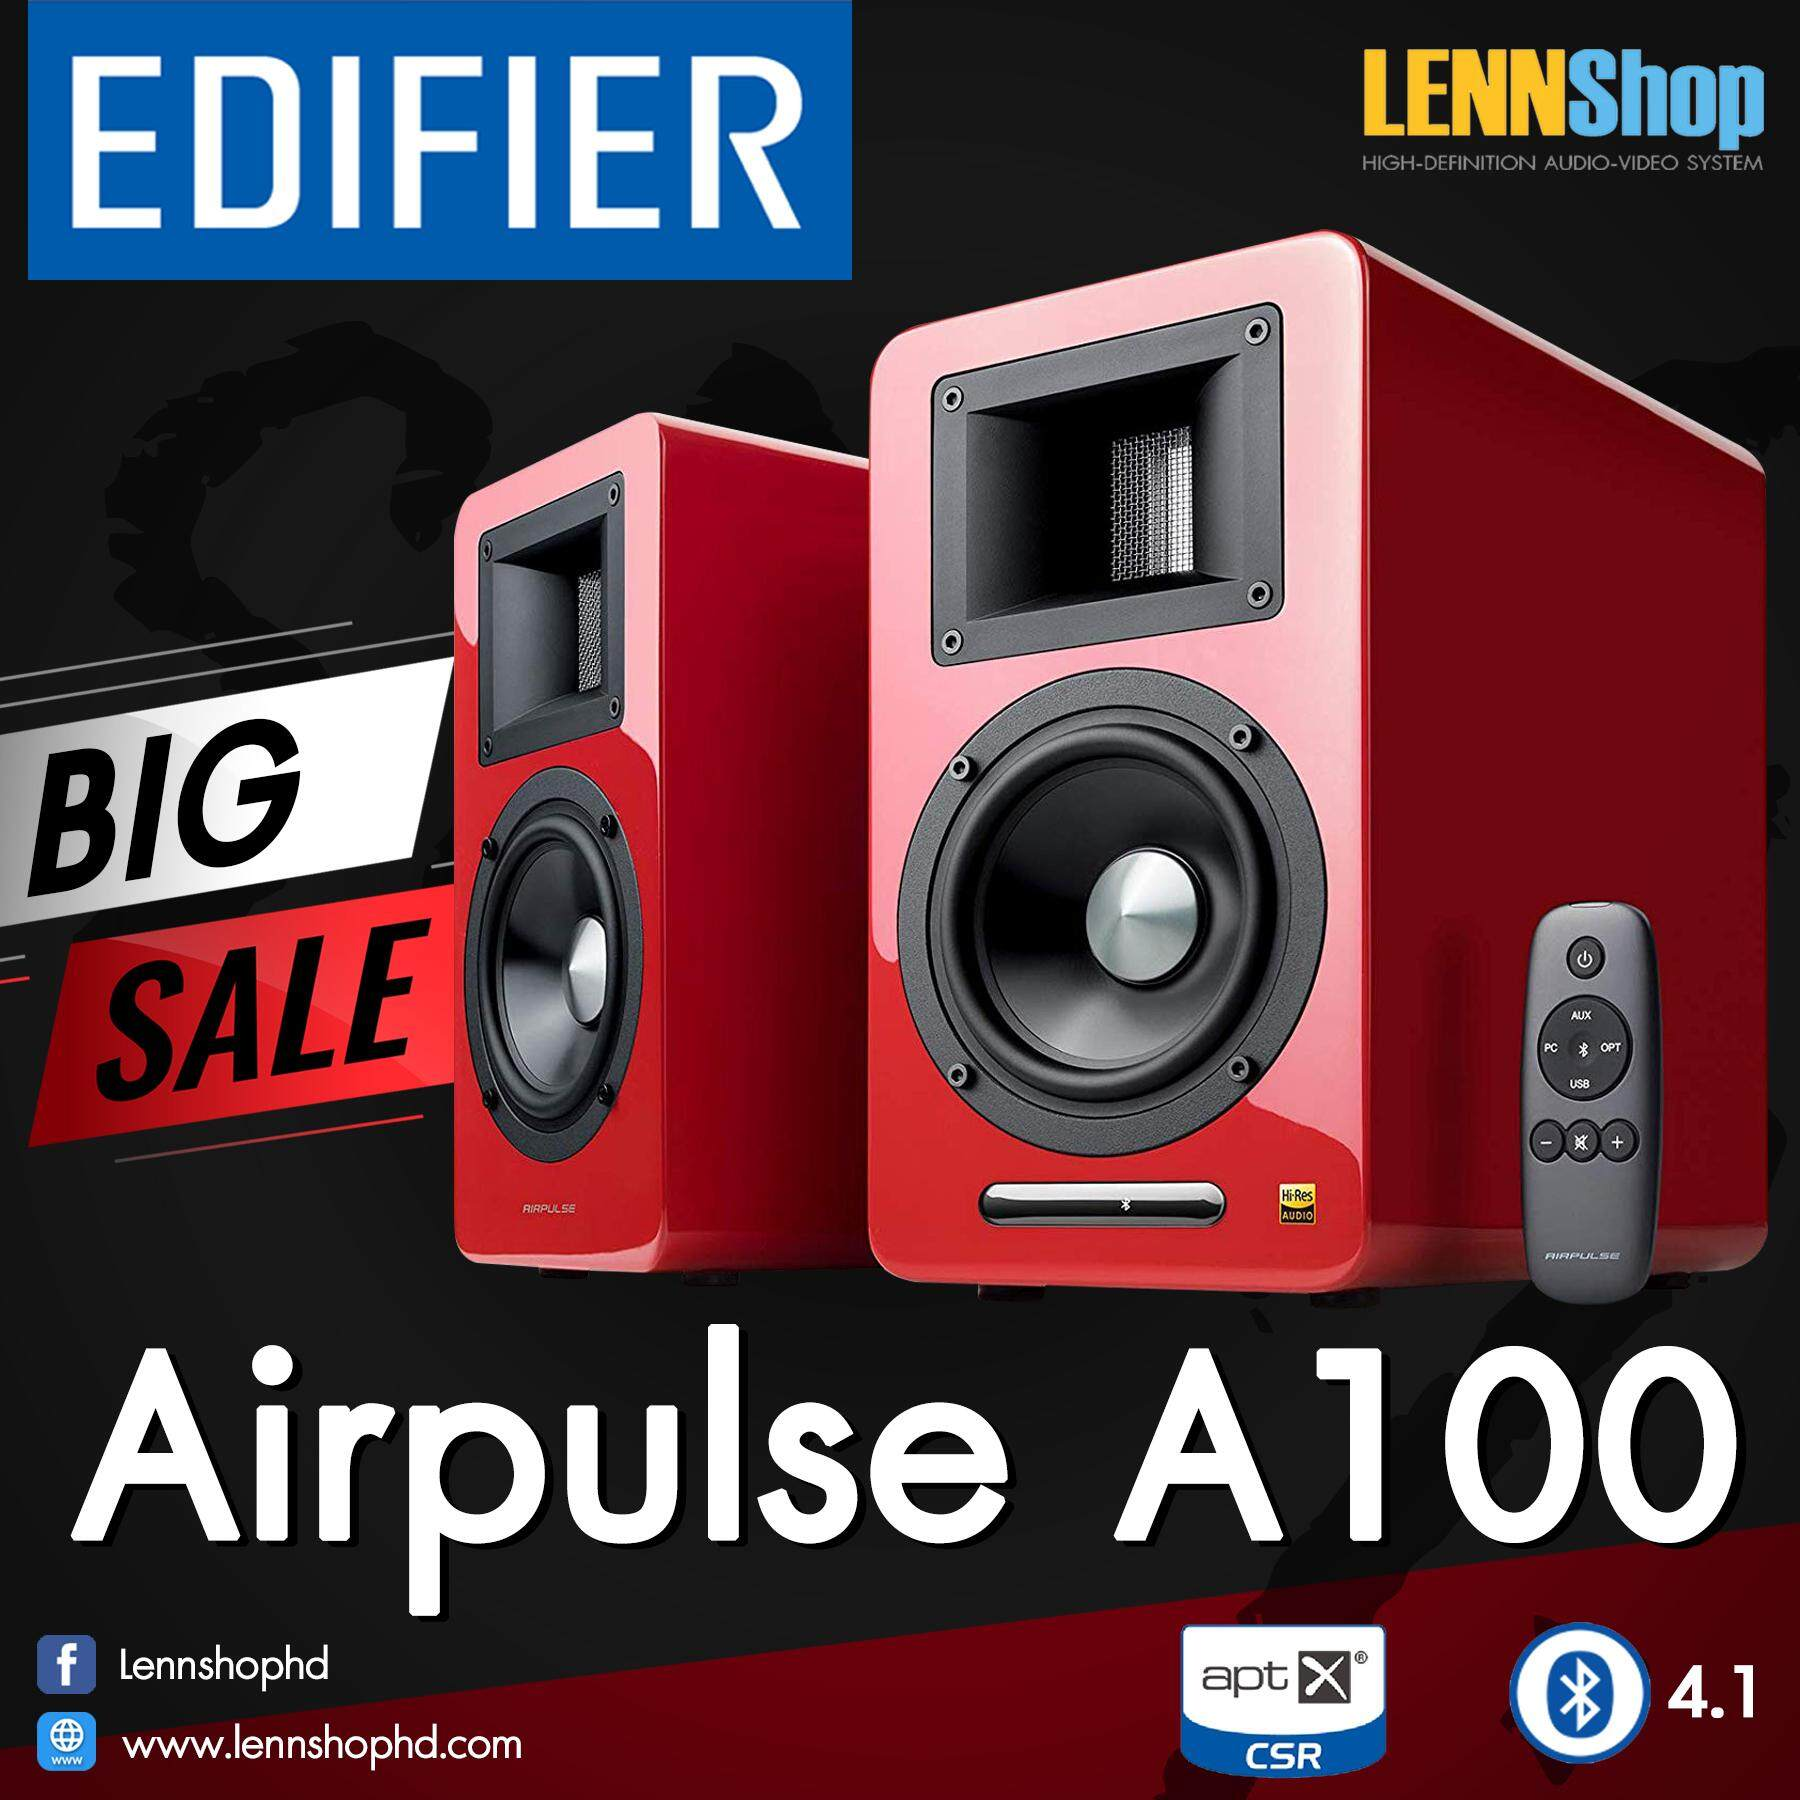 สอนใช้งาน  นครปฐม Edifier Airpulse A100 Hi-Res Audio Certified Active Speaker System Built-in Amplifier Optical  Coaxial  Bluetooth 4.1 - Red